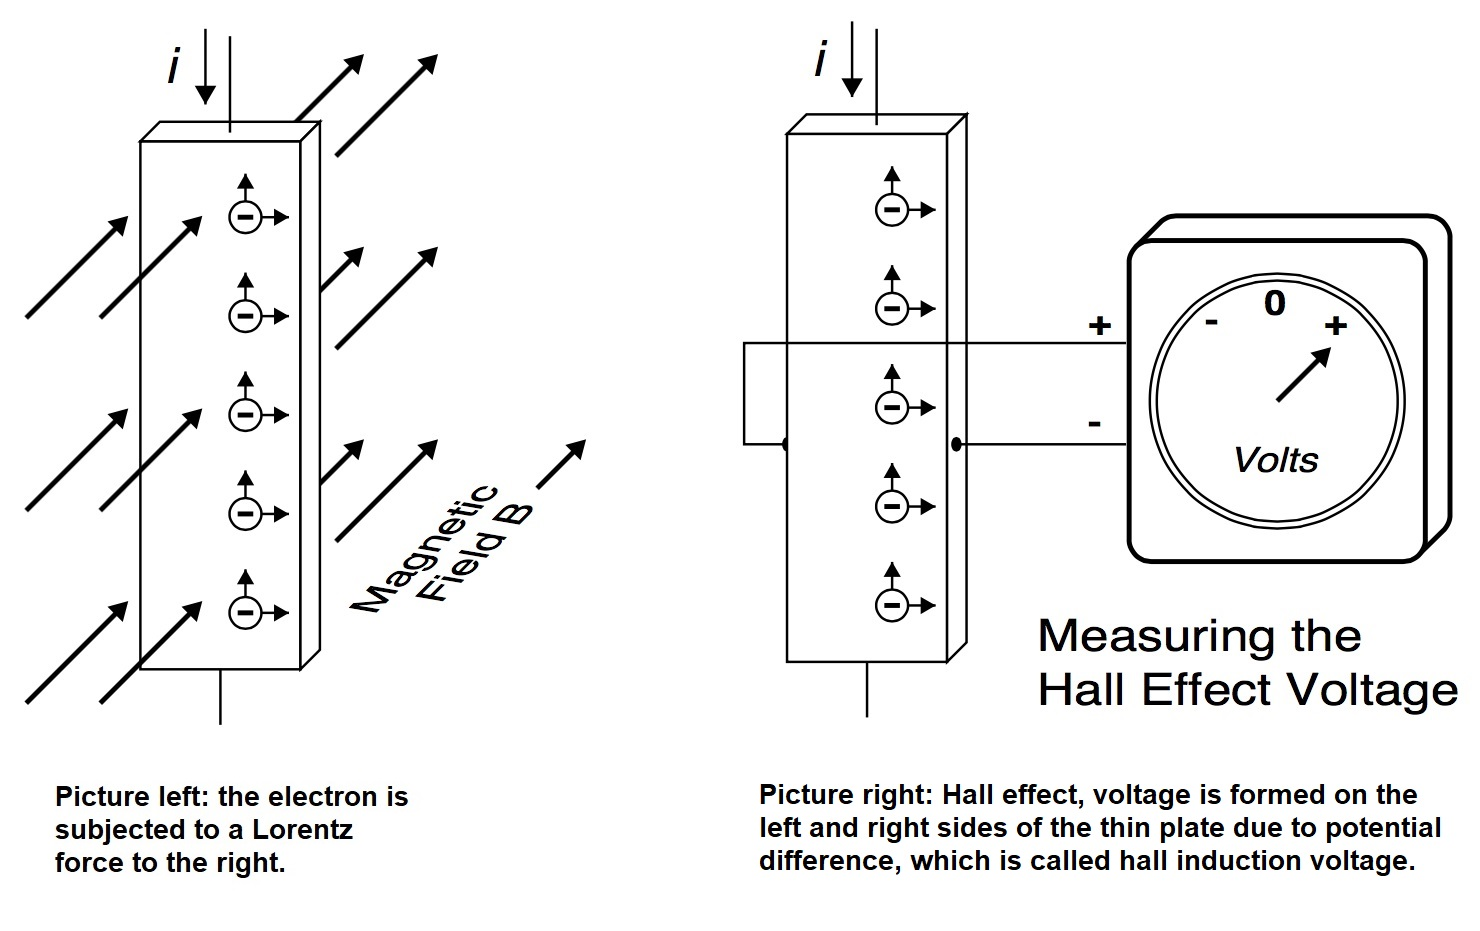 Why Permanent Magnets Needed in Hall Effect Sensors